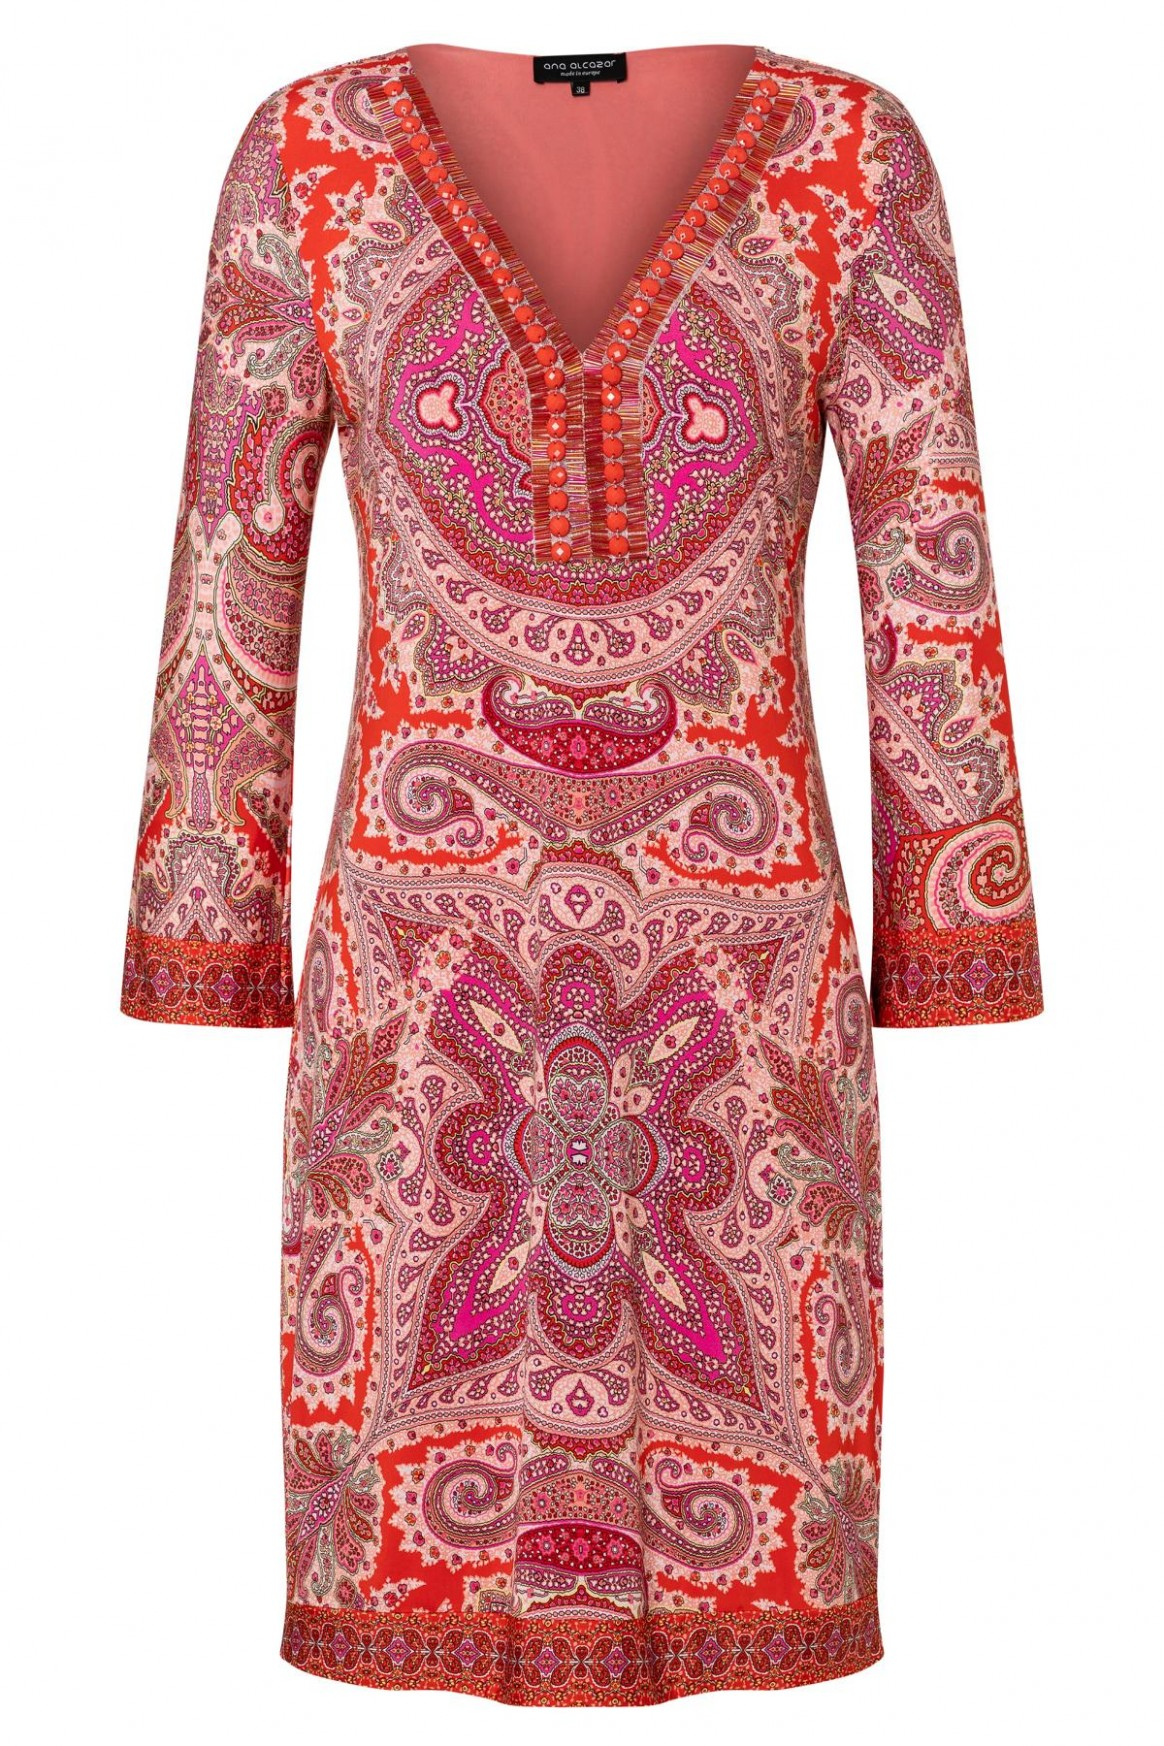 Tunic dress Zafai with deco-neckline in red with paisley-print  Ana Alcazar